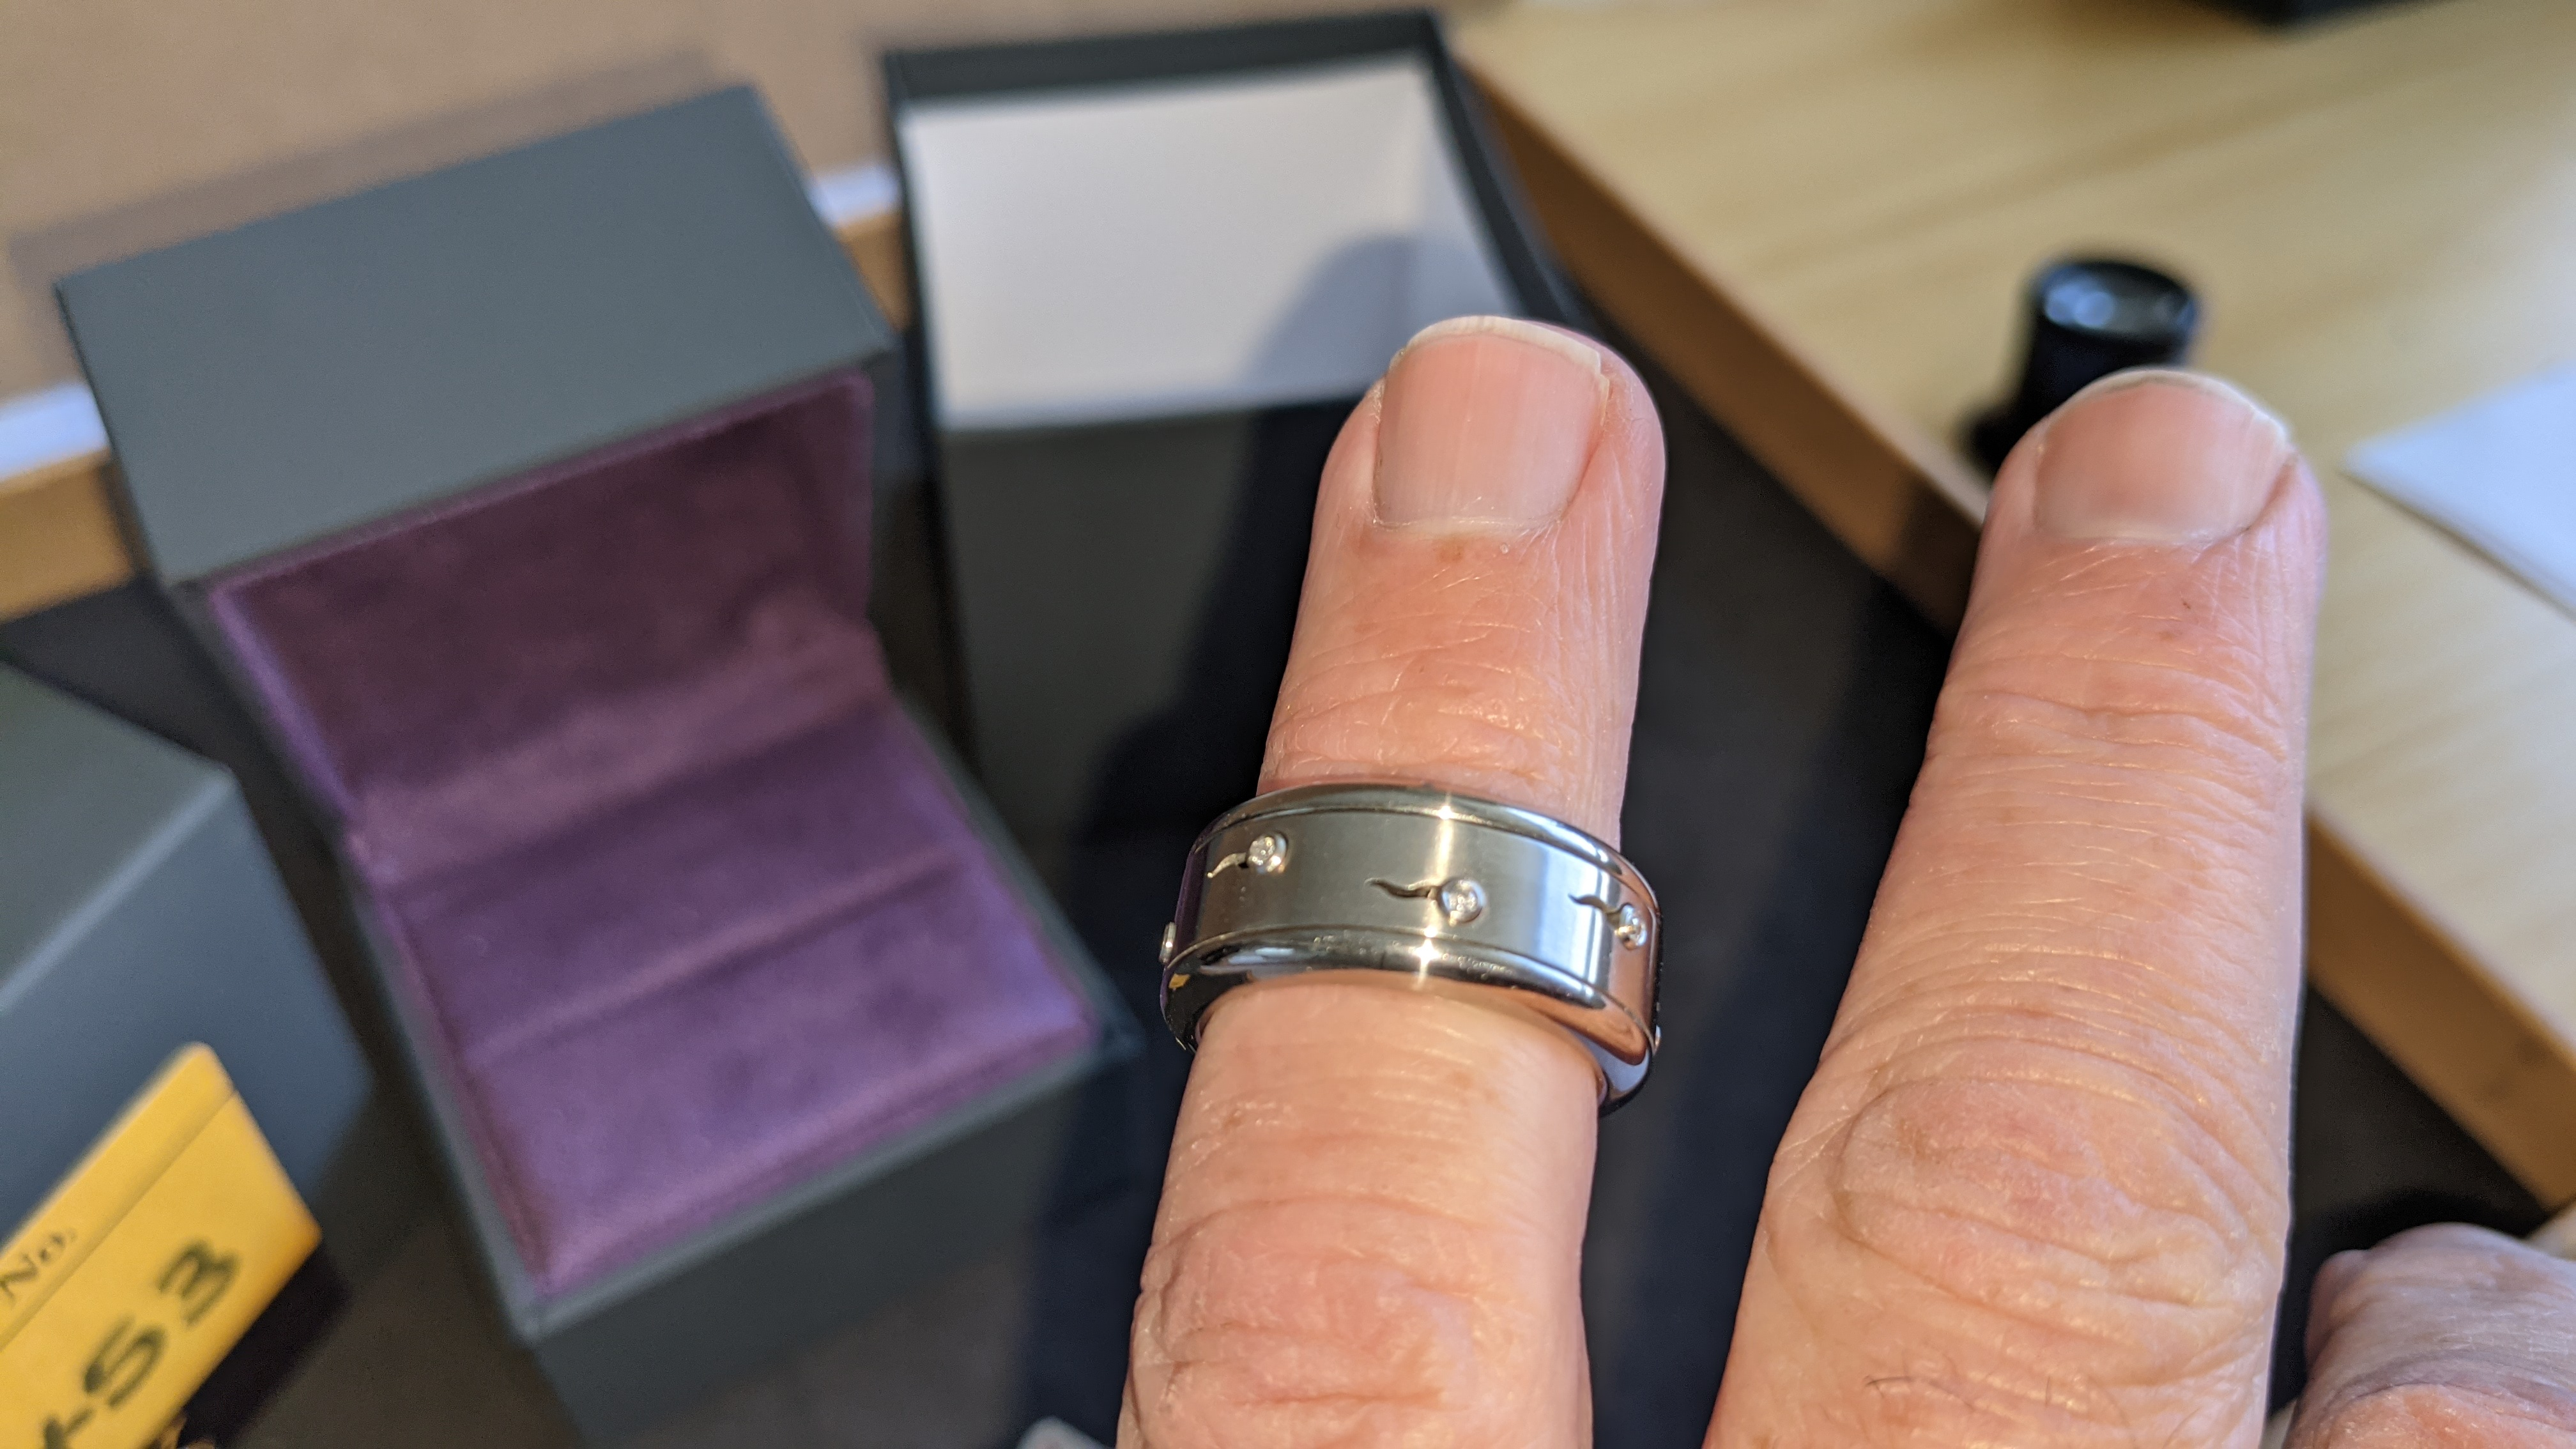 Stainless steel & diamond spin ring RRP £455 - Image 11 of 13